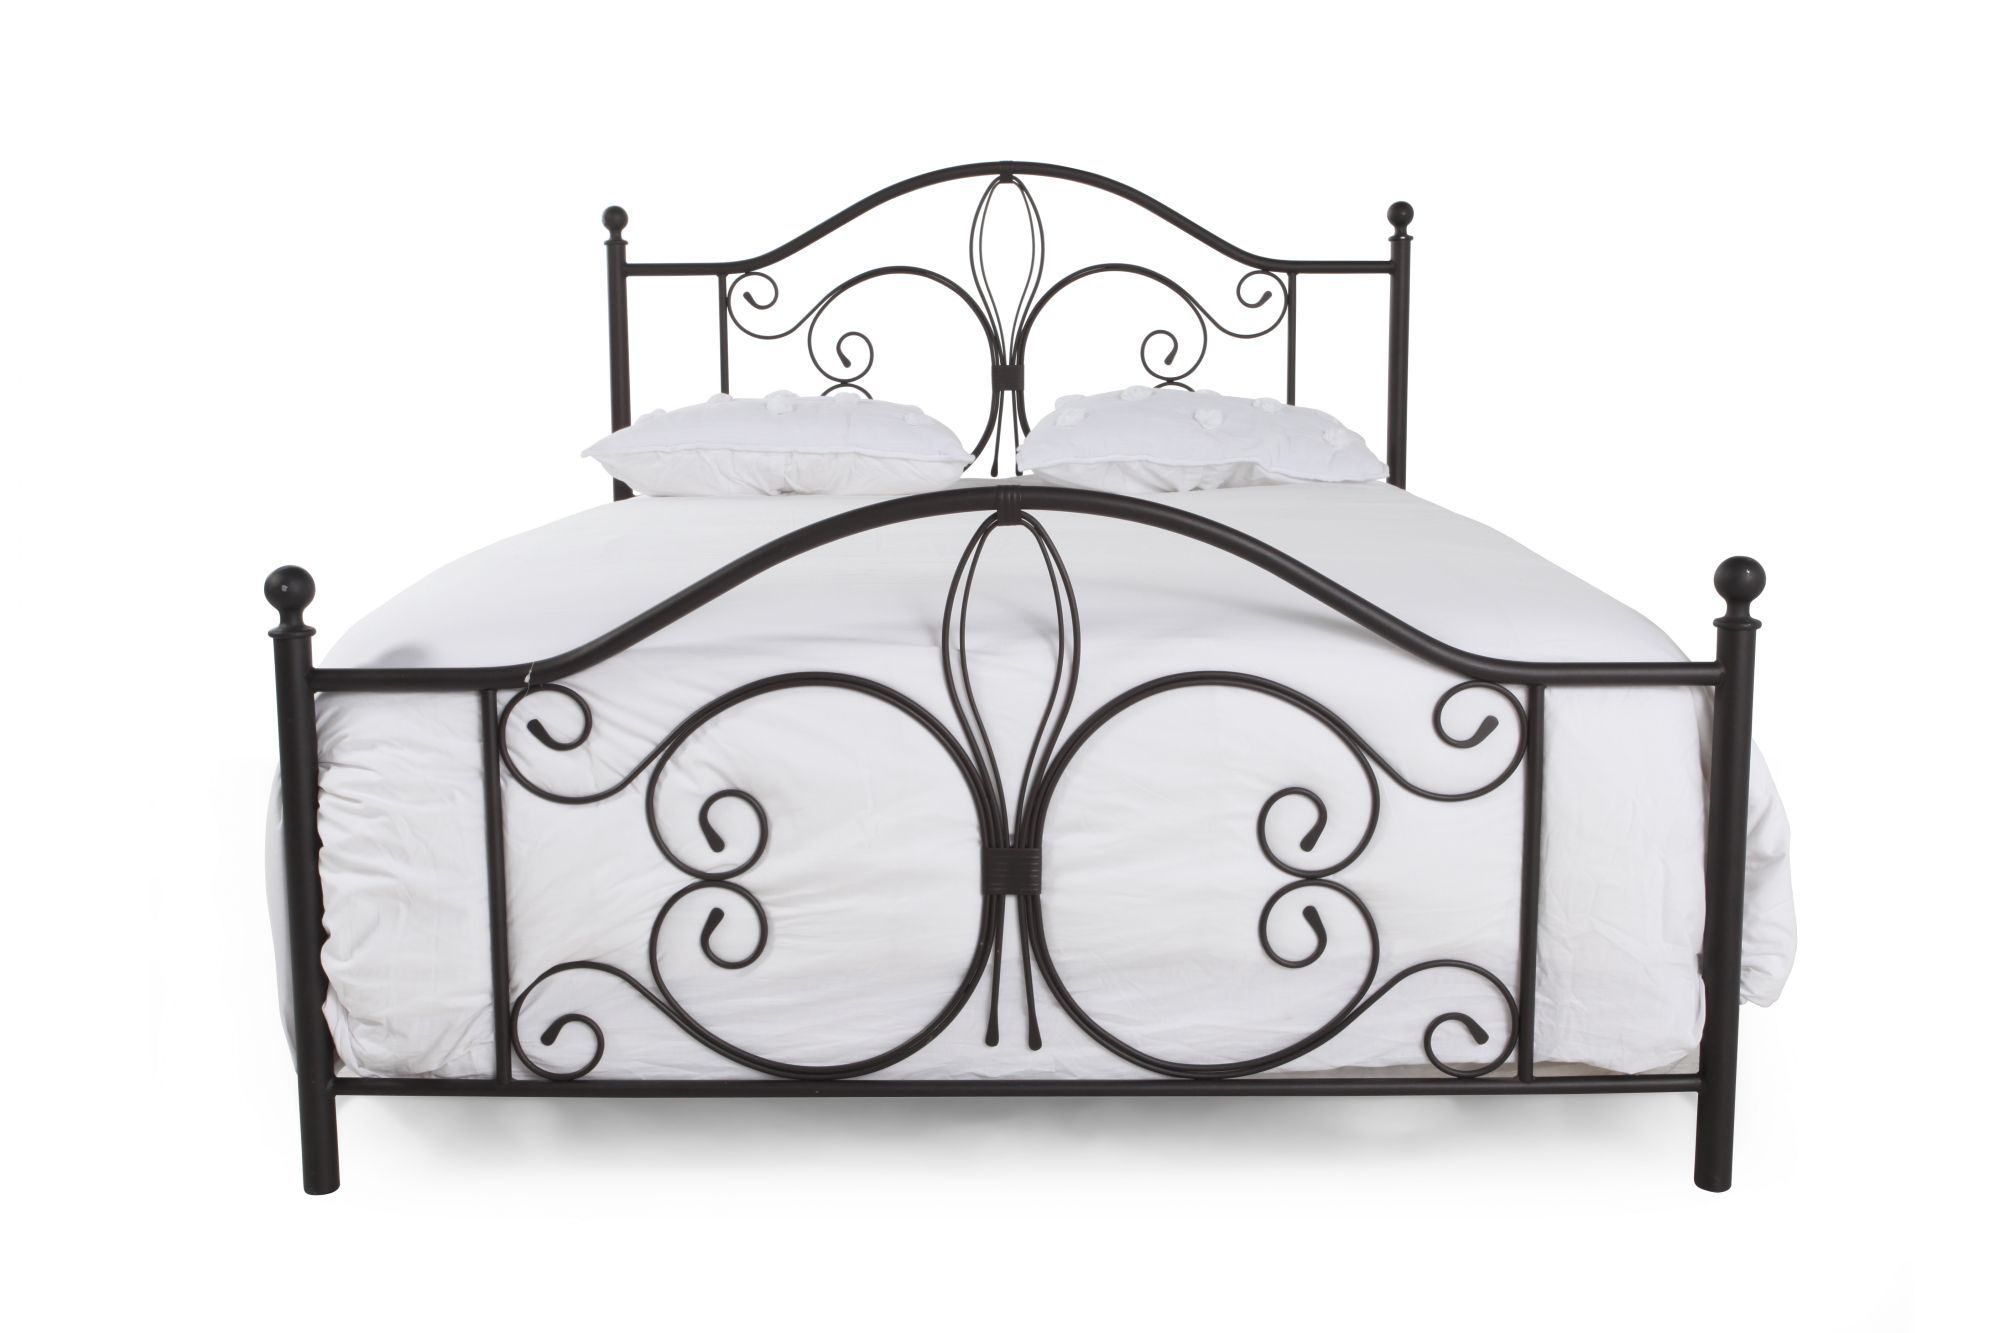 Hillsdale Milwaukee Queen Bed Mathis Brothers Furniture 234 95 Bed Queen Beds House Interior